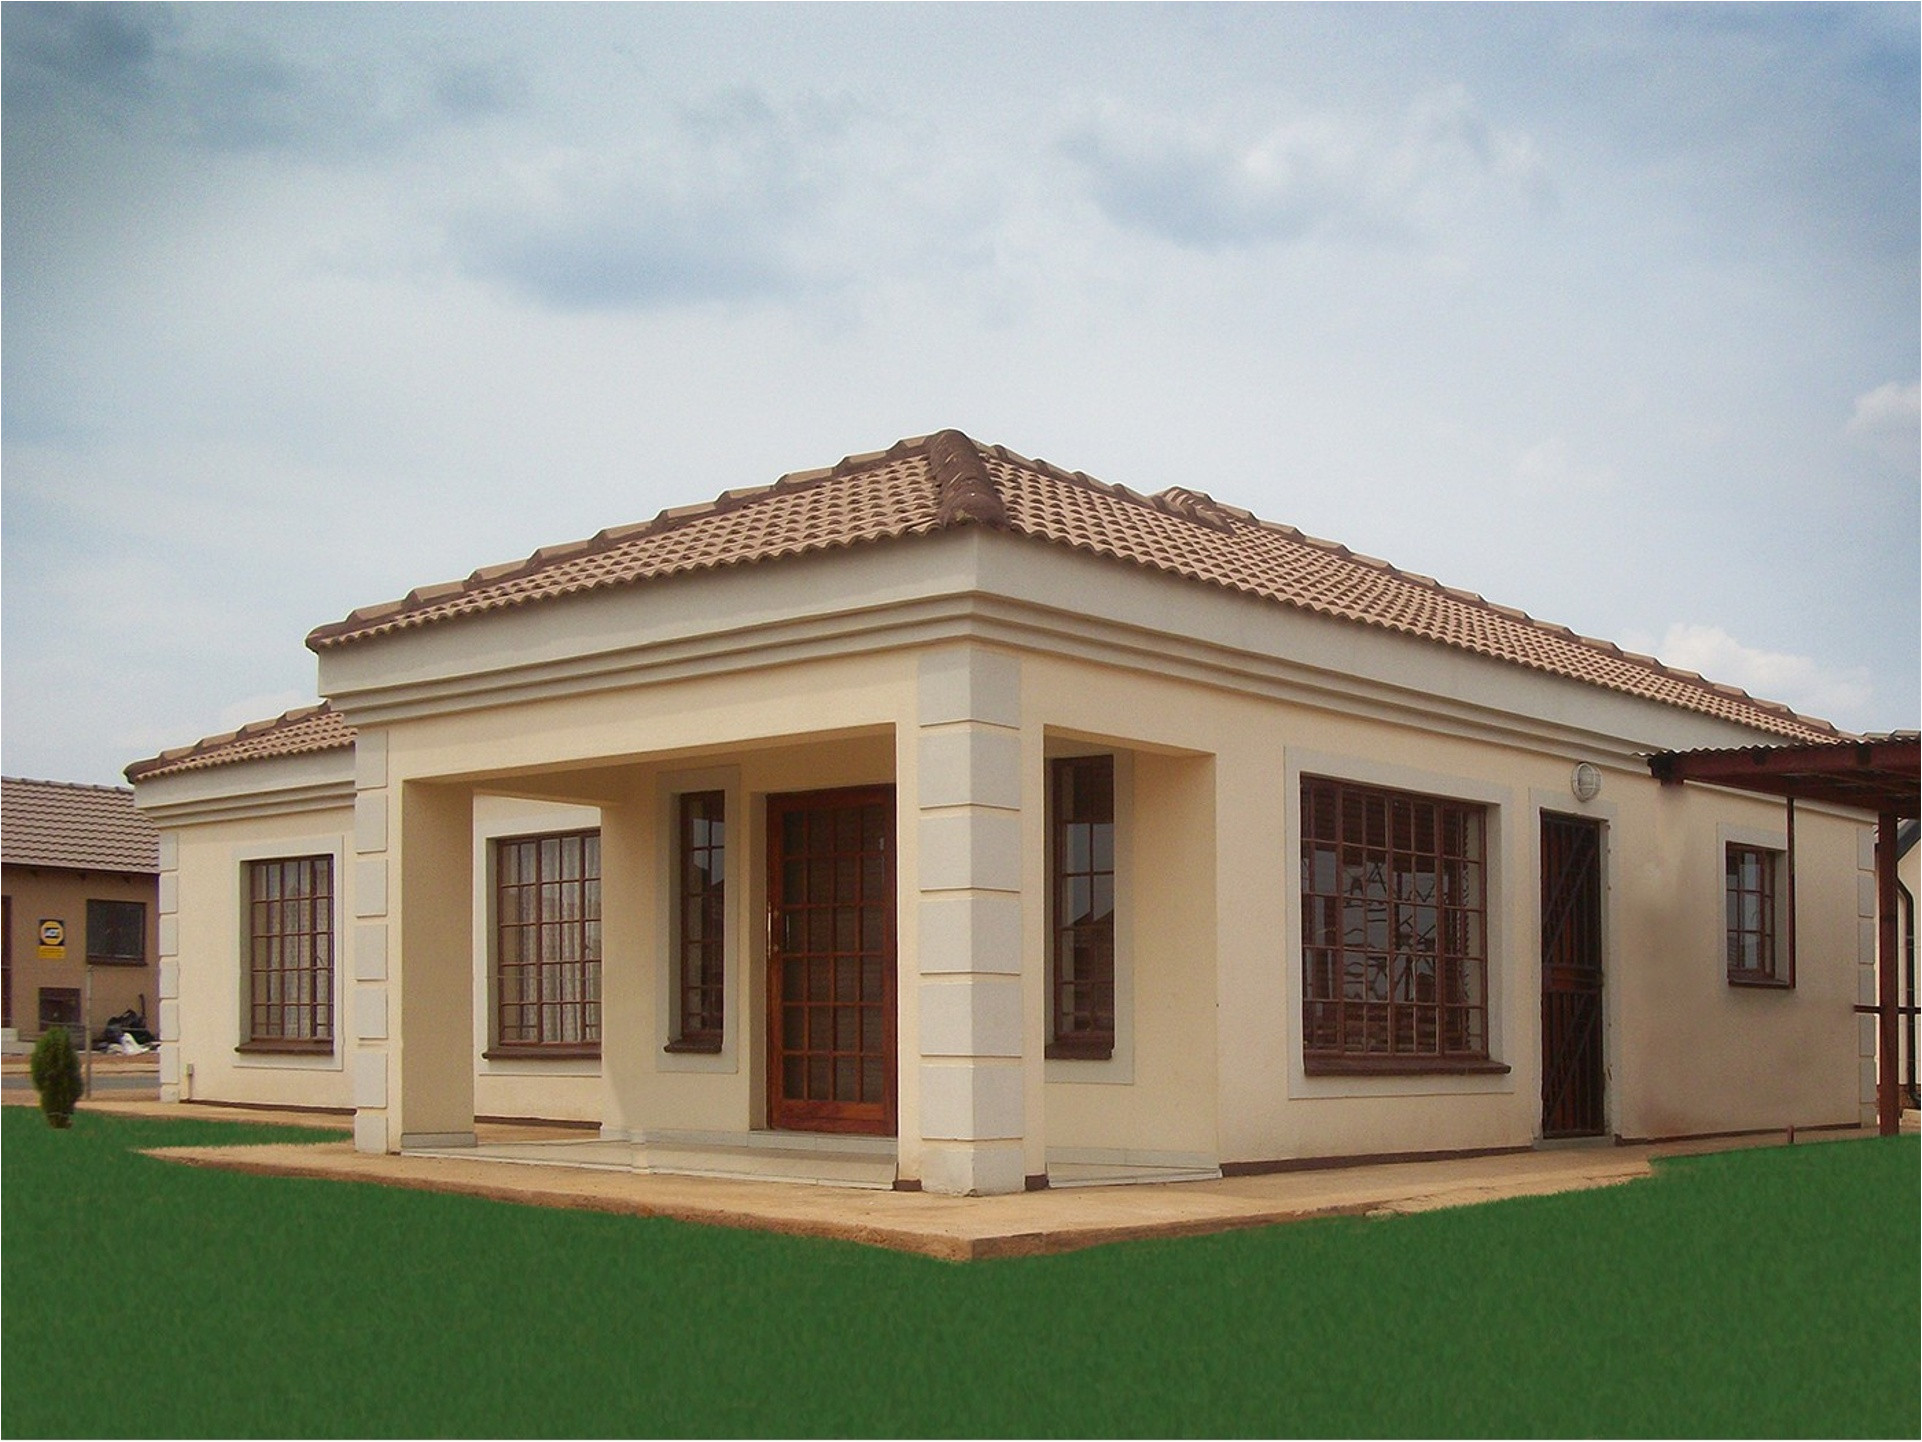 African Home Plans Designs Ethnic Decoration Africa House Plans House Style and Plans